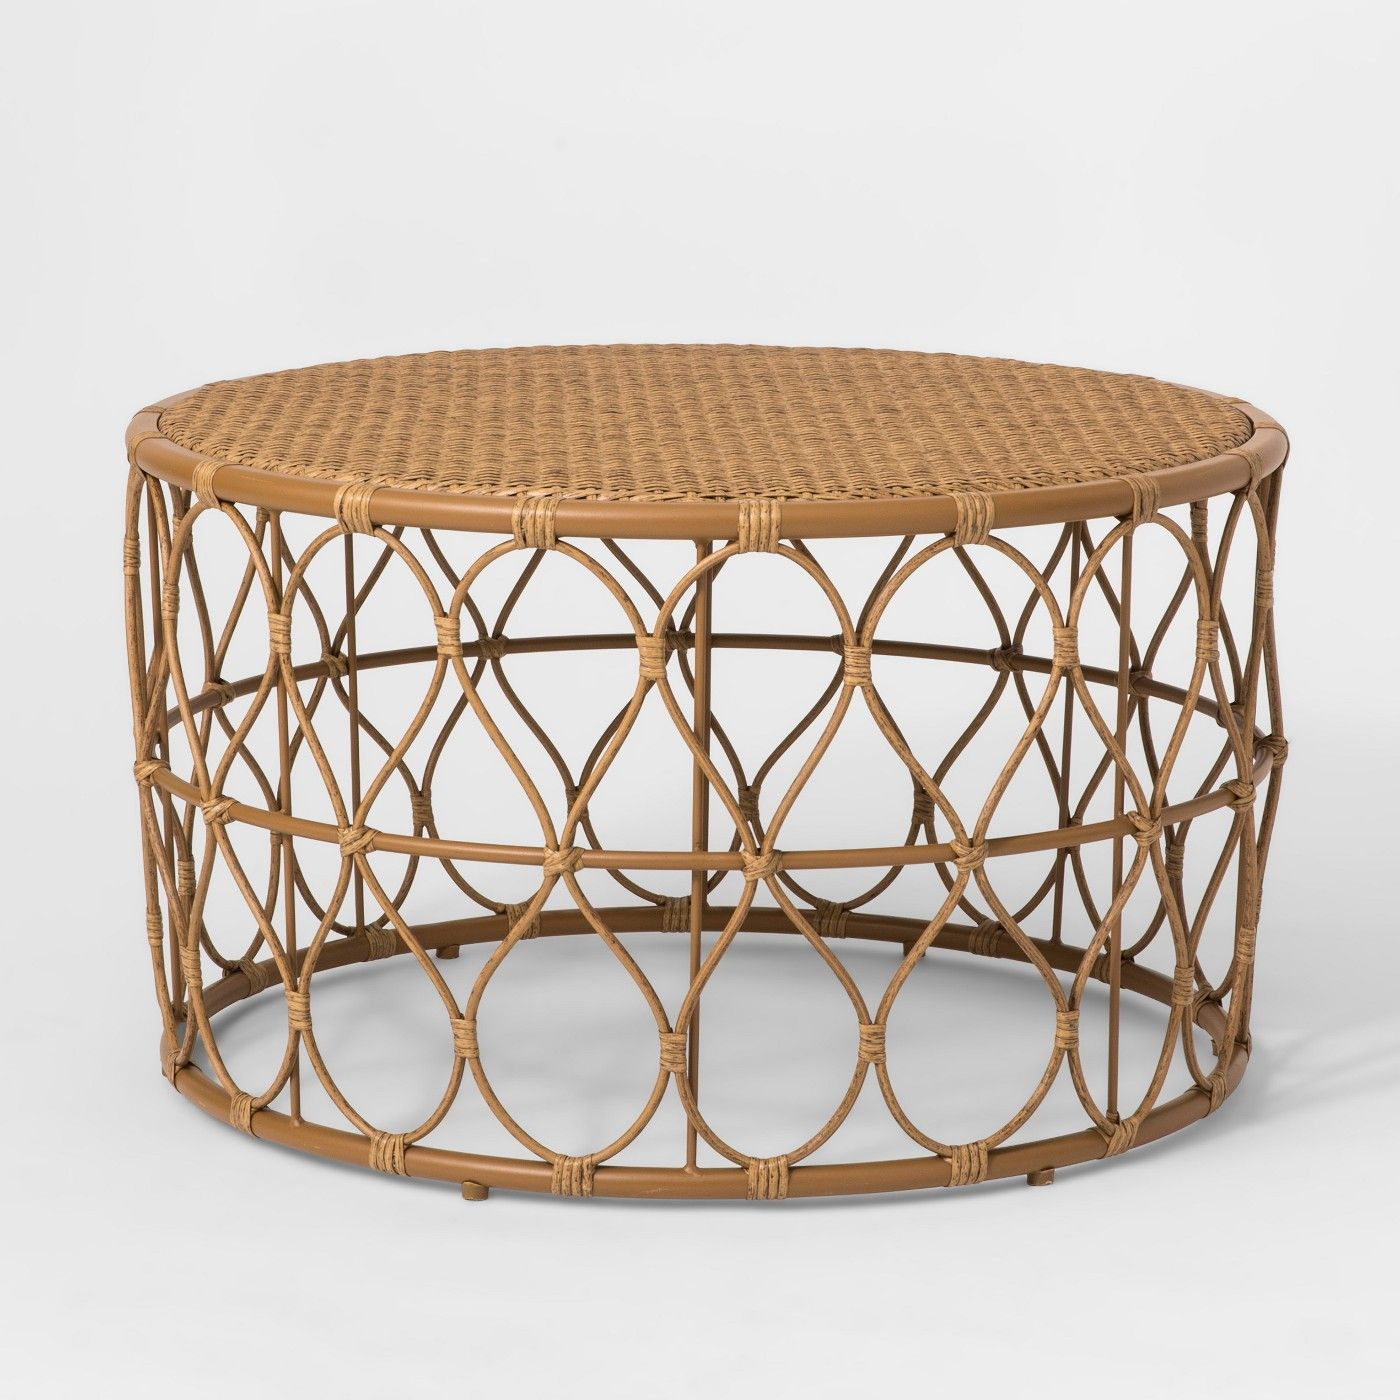 Britanna Patio Coffee Table Opalhouse Image 1 Of 3 Wicker Coffee Table Patio Furniture Collection Outdoor Coffee Tables [ 1400 x 1400 Pixel ]